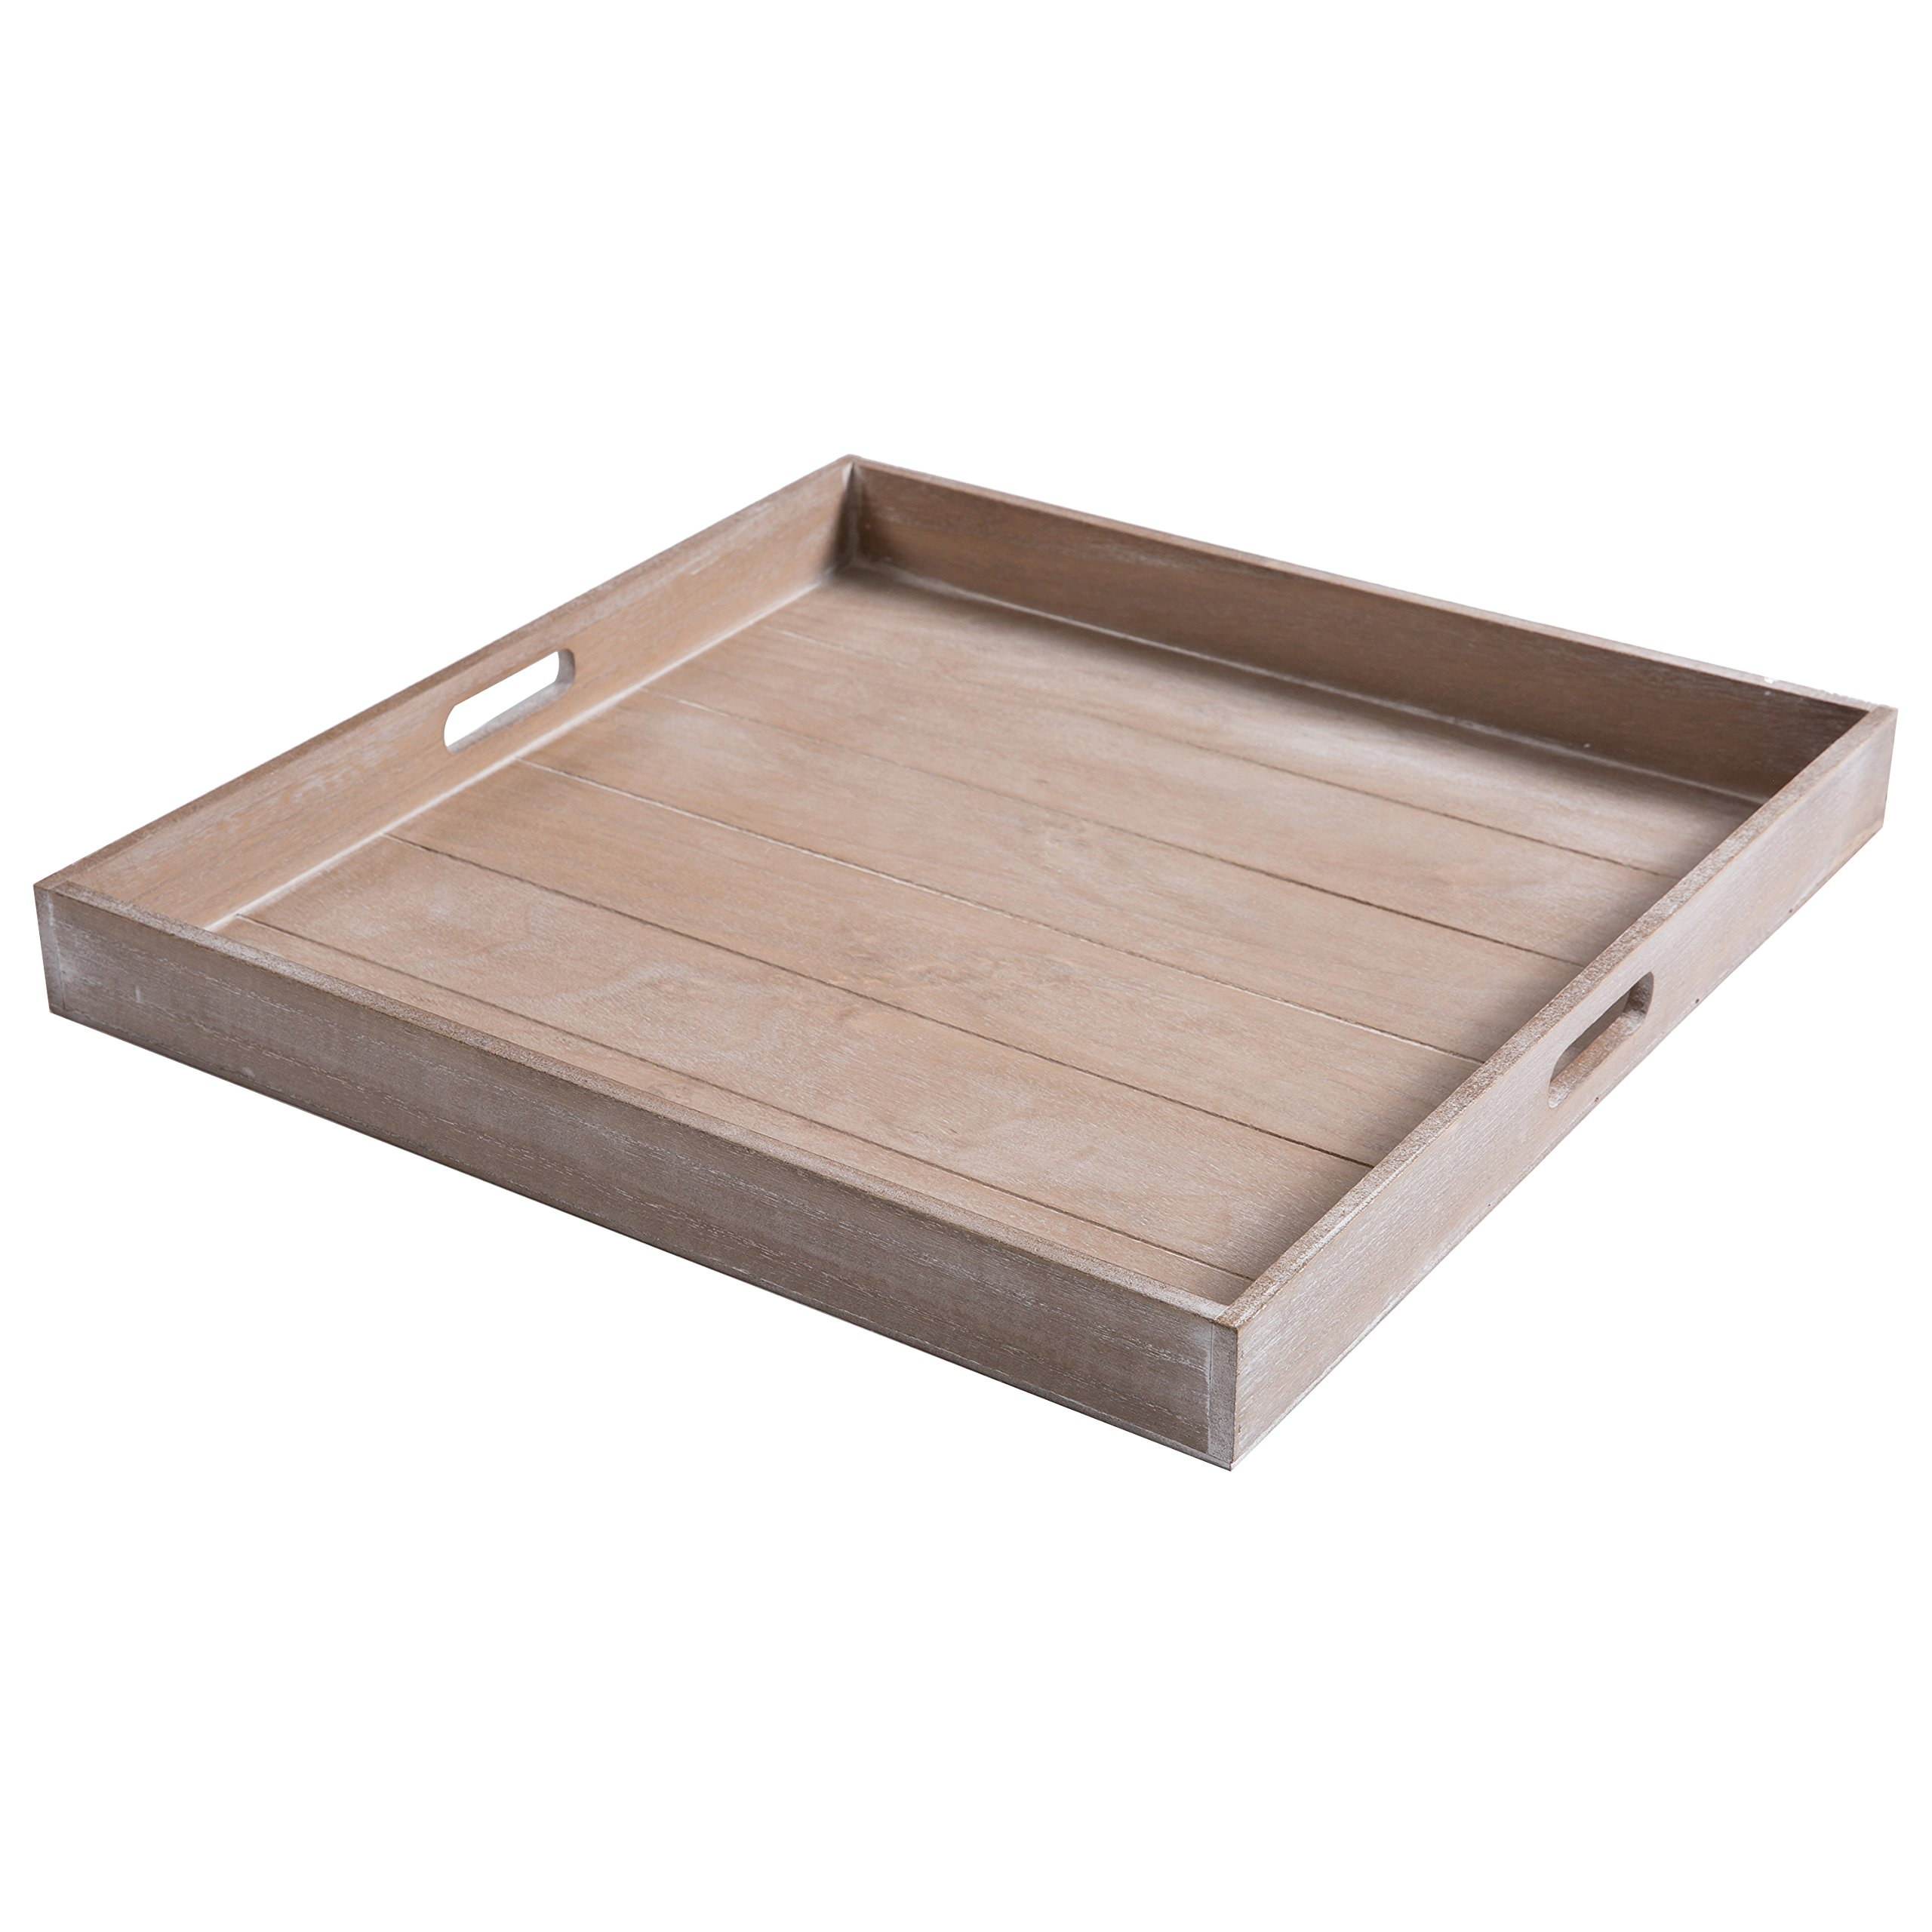 MyGift Large Shabby Chic Square Wood Serving Tray for Breakfast in Bed, Tea, Coffee - 19 x 19 inch by MyGift